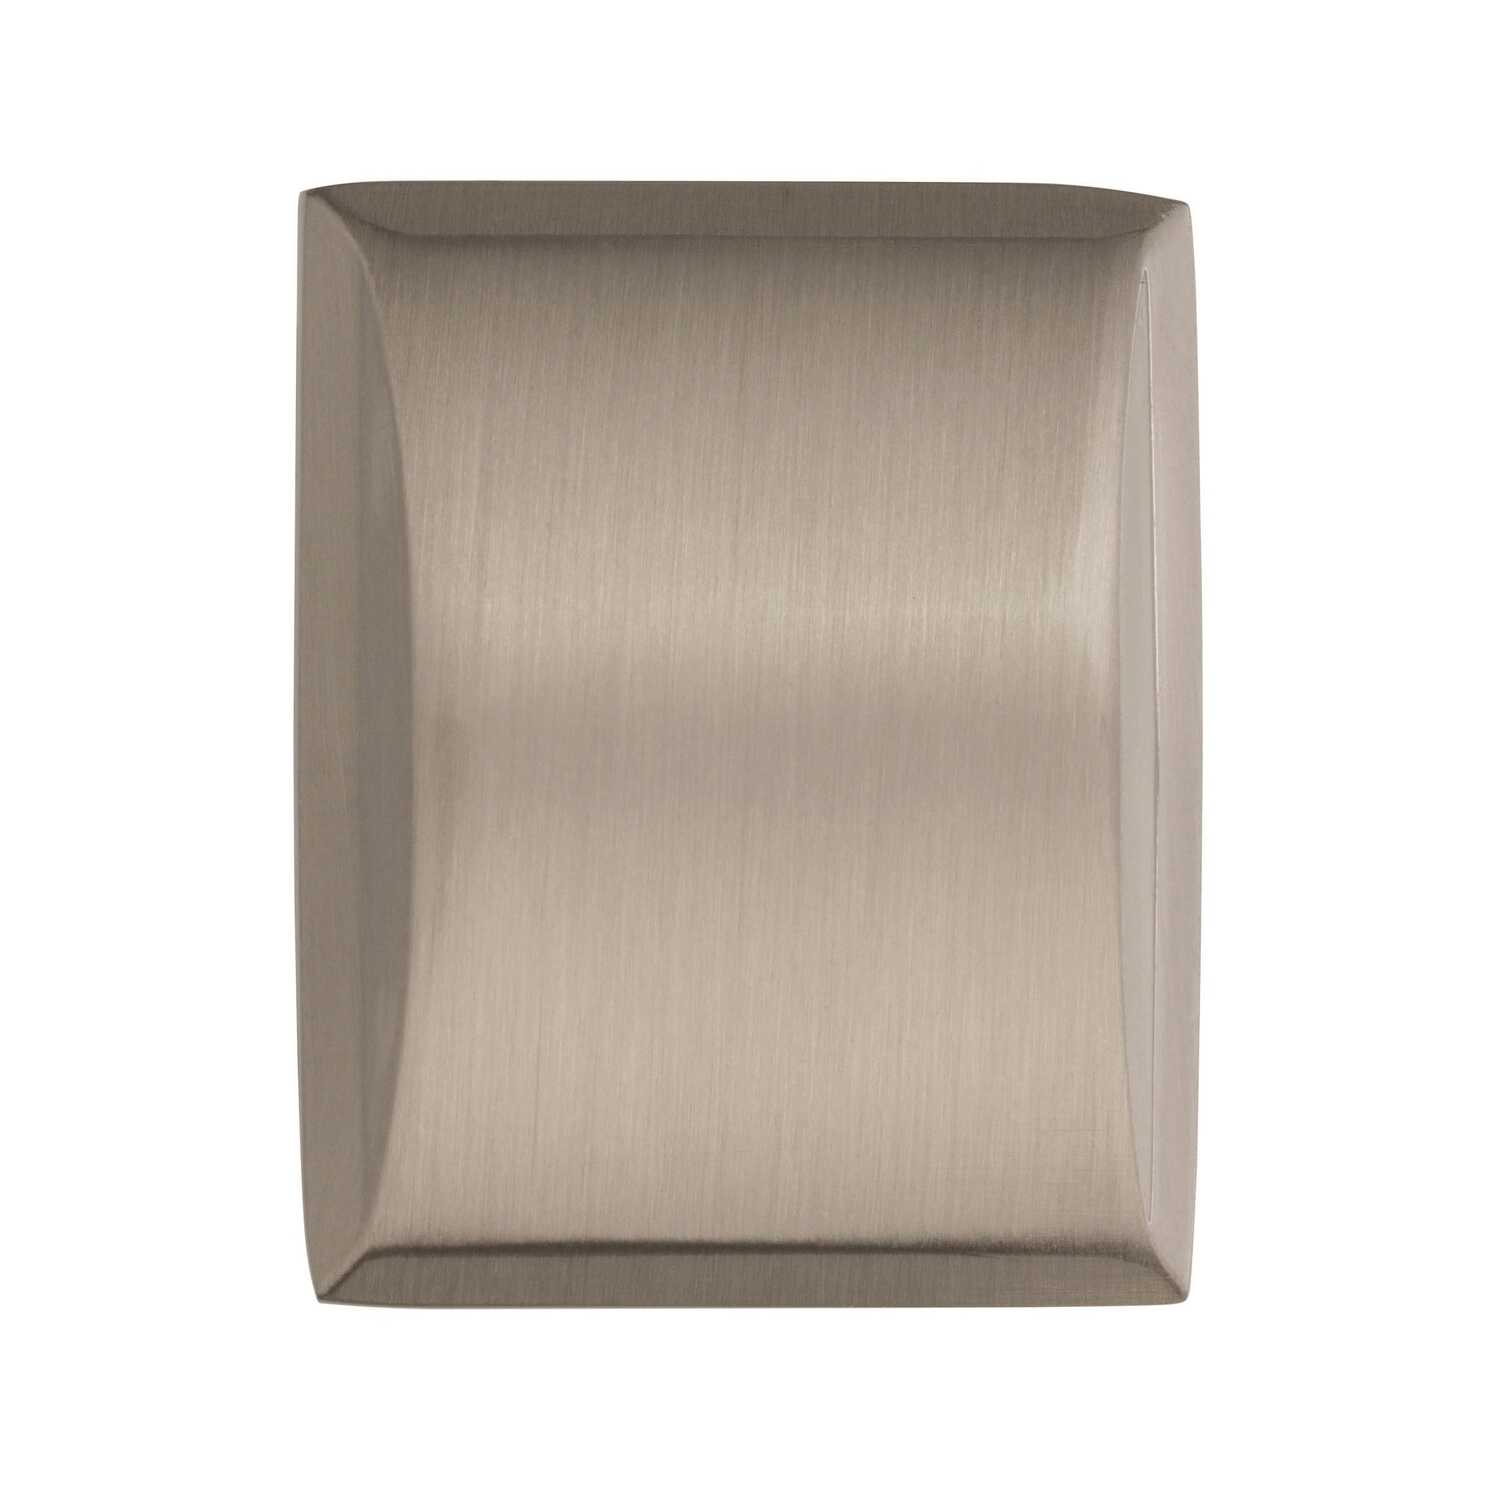 Amerock  Candler  Rectangle  Cabinet Knob  1-1/4 in. Dia. 1-1/8 in. Satin Nickel  5 pk